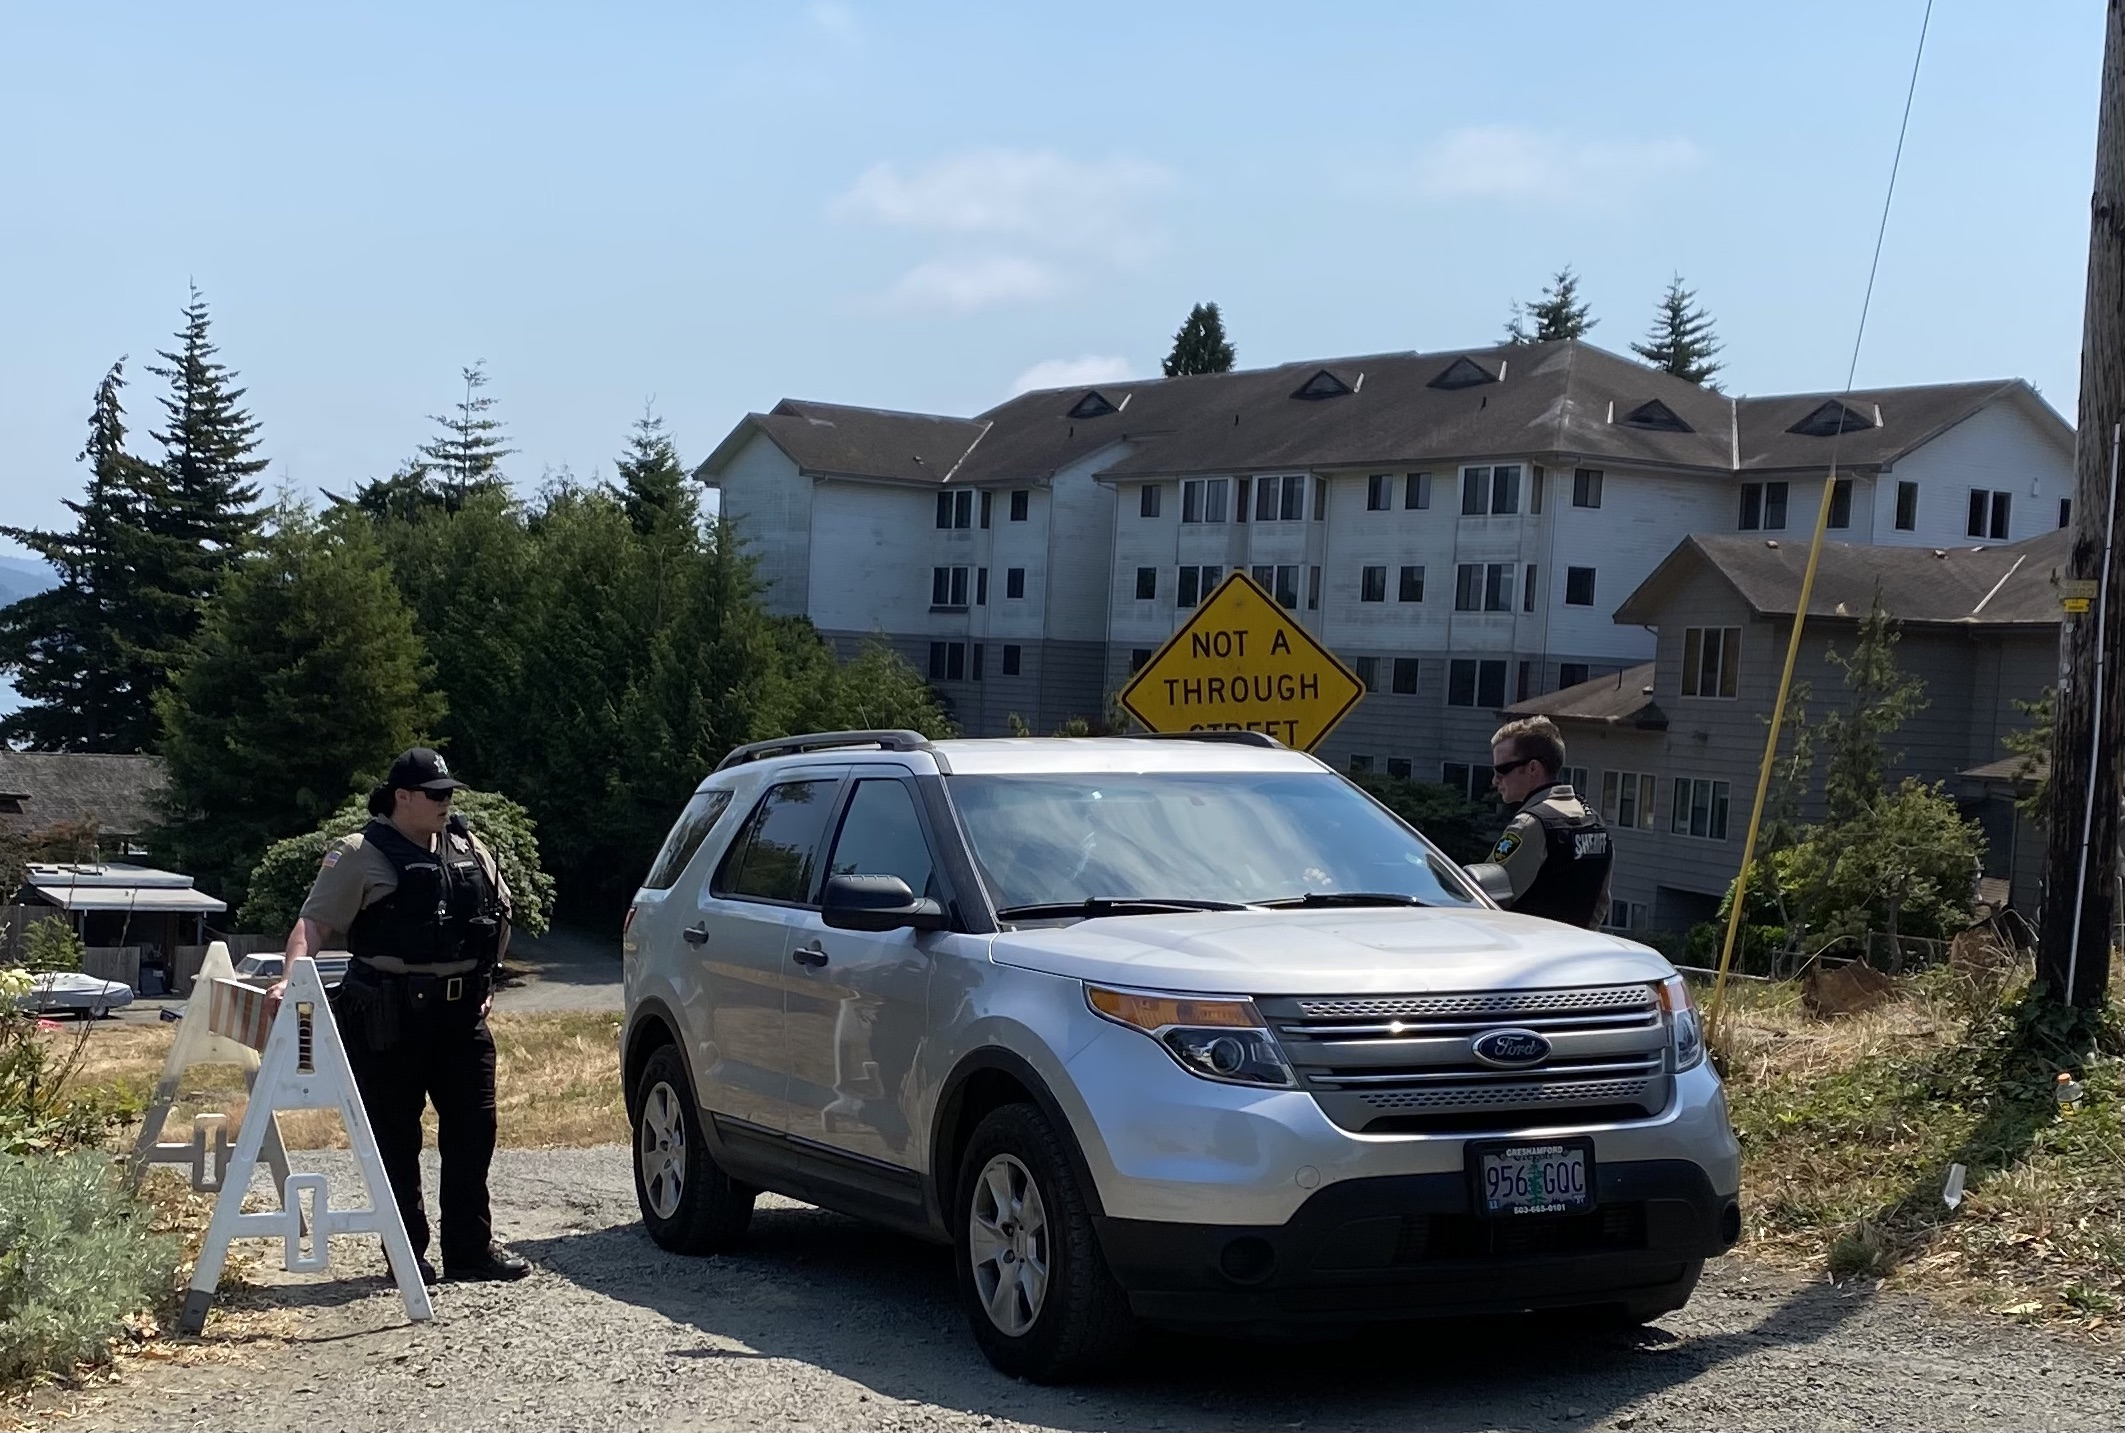 Read more about the article Coos Bay Physician Found Dead of Homicidal Violence in North Bend Home